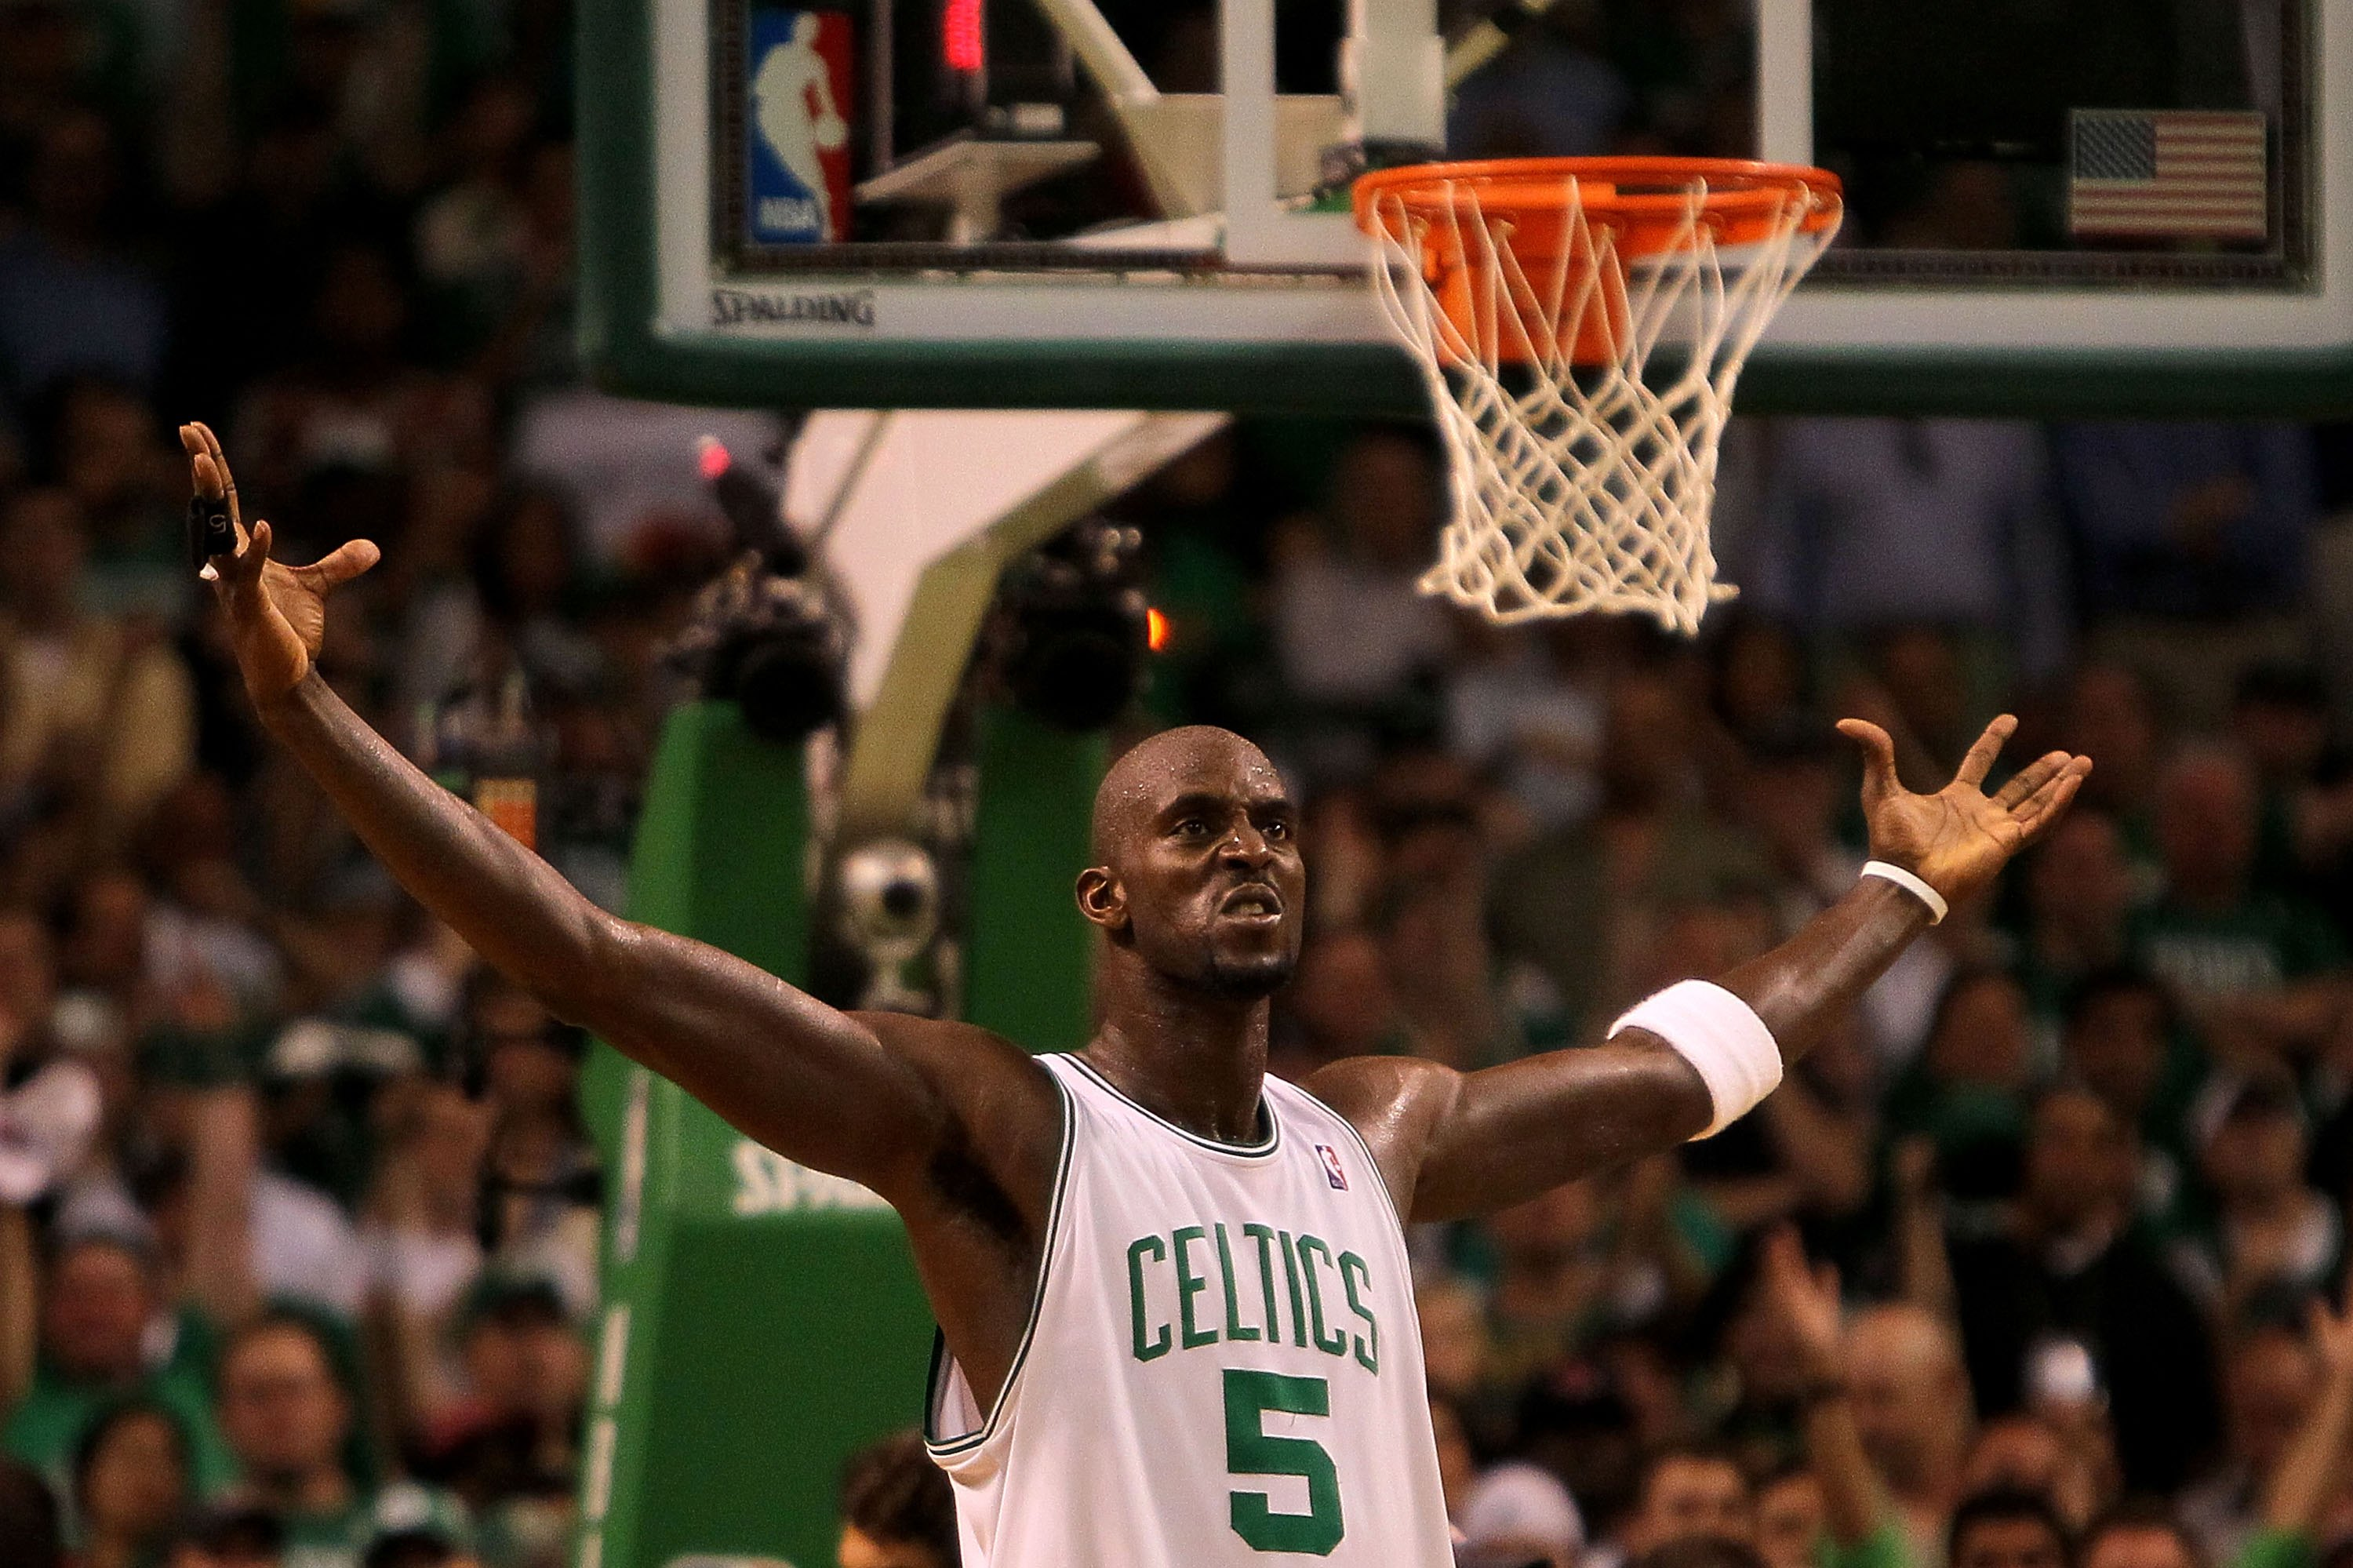 BOSTON - MAY 24:  Kevin Garnett #5 of the Boston Celtics gestures on court against the Orlando Magic in Game Four of the Eastern Conference Finals during the 2010 NBA Playoffs at TD Banknorth Garden on May 24, 2010 in Boston, Massachusetts.  NOTE TO USER: